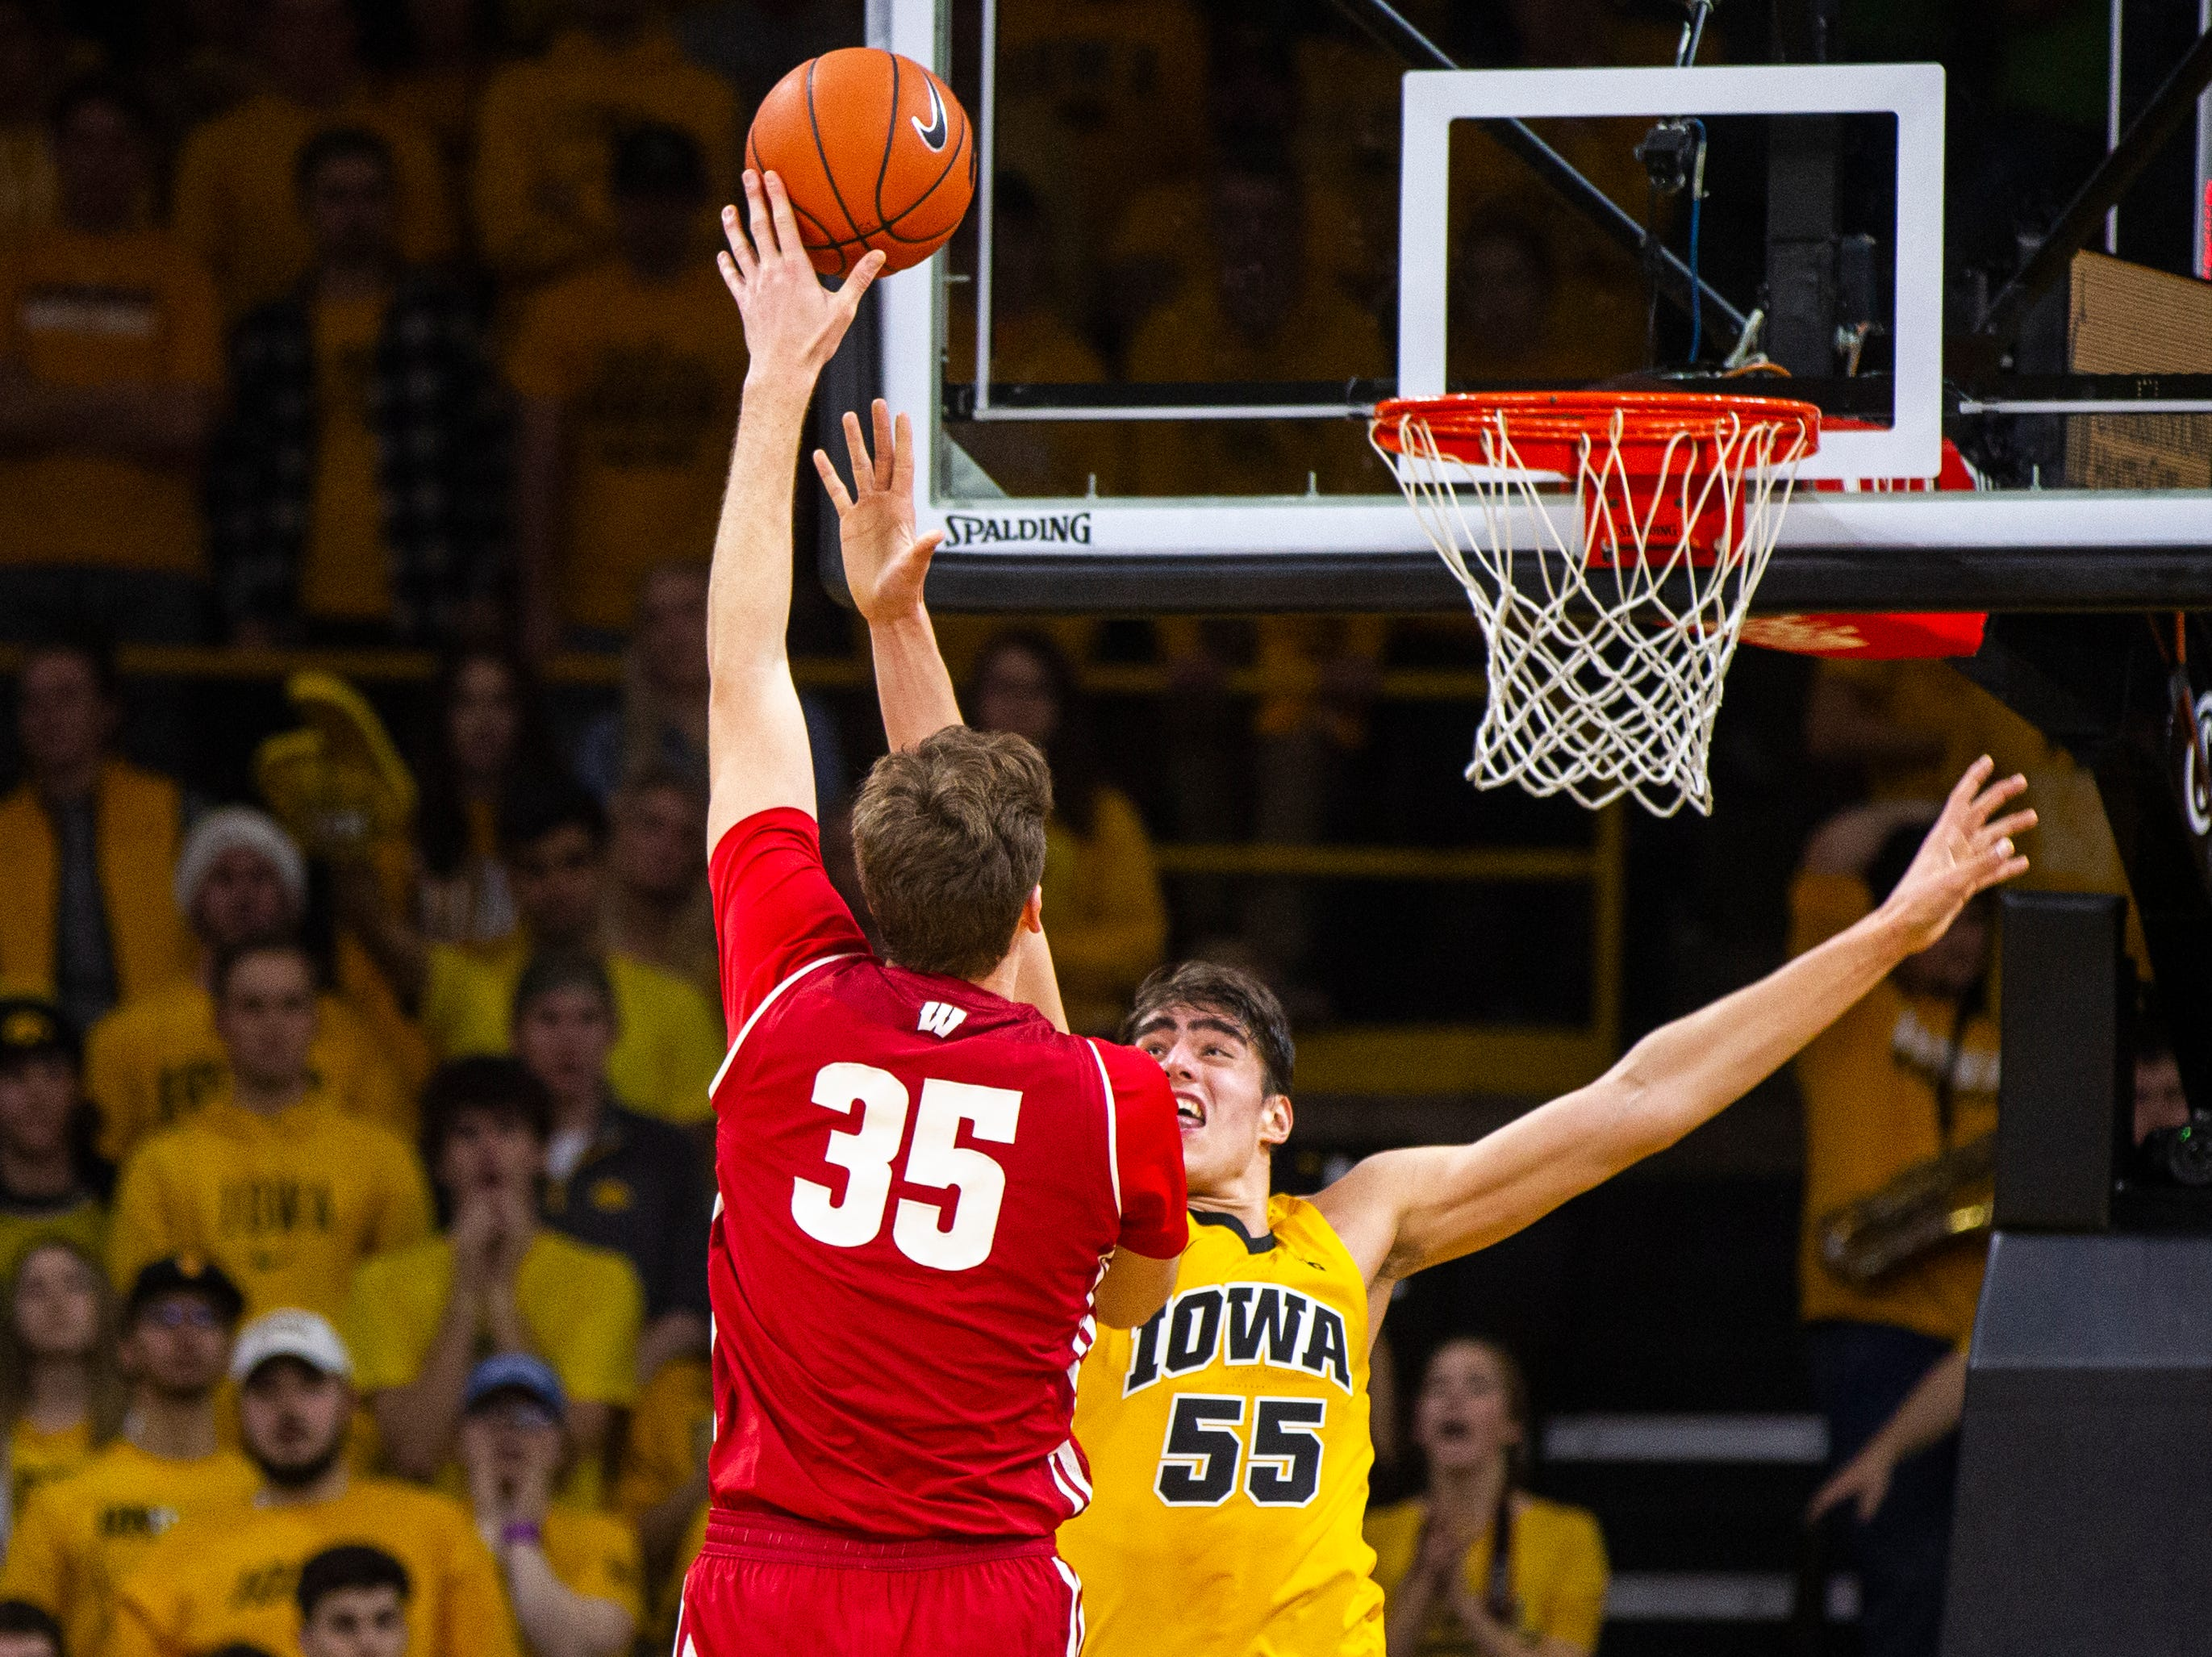 Wisconsin's Nate Reuvers (35) attempts a shot past Iowa forward Luka Garza (55) during a NCAA Big Ten Conference men's basketball game on Friday, Nov. 30, 2018, at Carver-Hawkeye Arena in Iowa City.